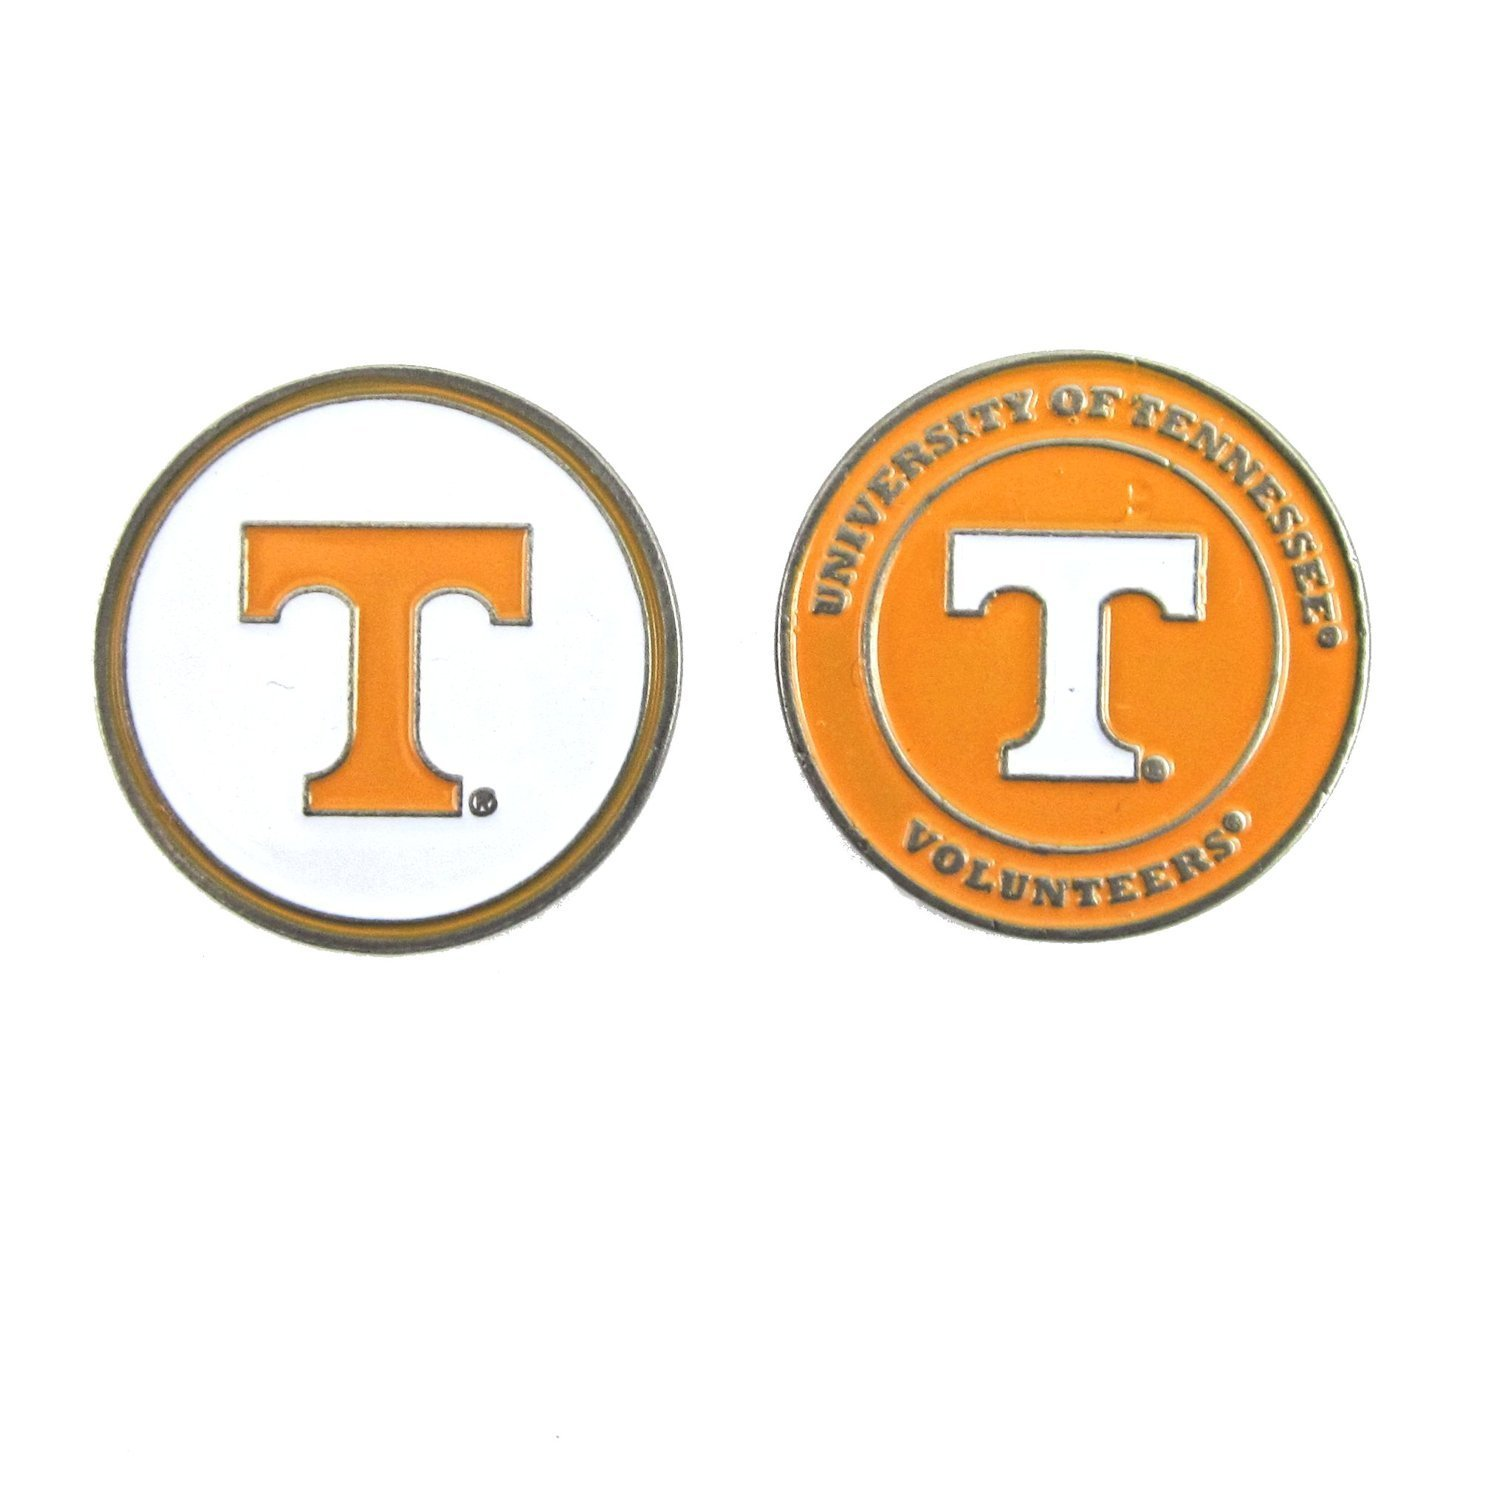 Tennessee Volunteers Double Sided Golf Ball Marker, Tennessee Volunteers Ball Marker By Waggle Pro Shop,USA